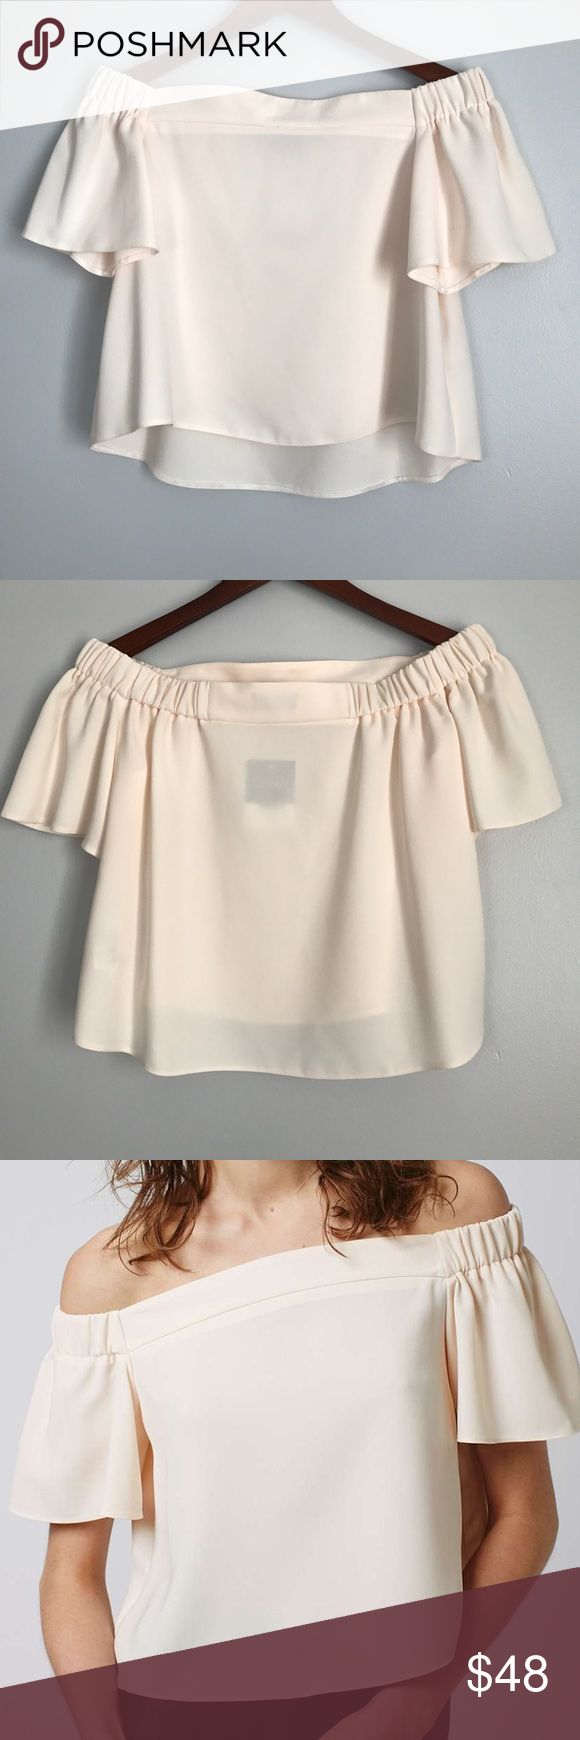 Topshop Livi Bardot Top Bare shoulders are still a favourite. Dress yours up with a structured clean shape in this pale peachy pink bardot top - perfect worn with denim and heels for a stylish finish. 100% Polyester. Machine wash. (NR21815) Topshop Tops